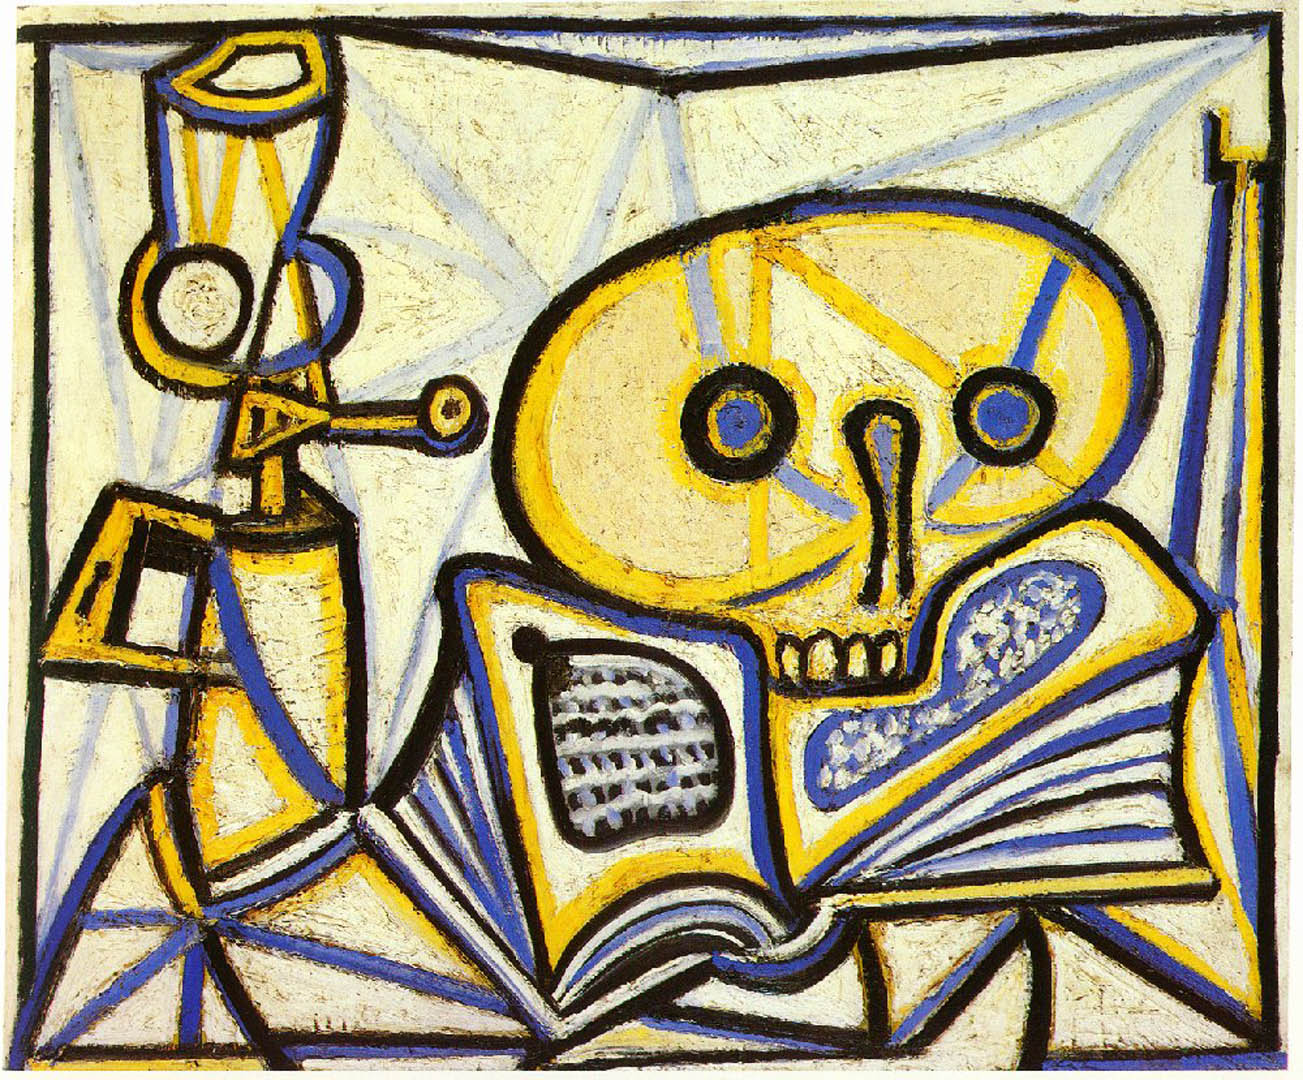 Cuadros De Picasso Wikipedia Still Life With Skull Hairstyle Gallery